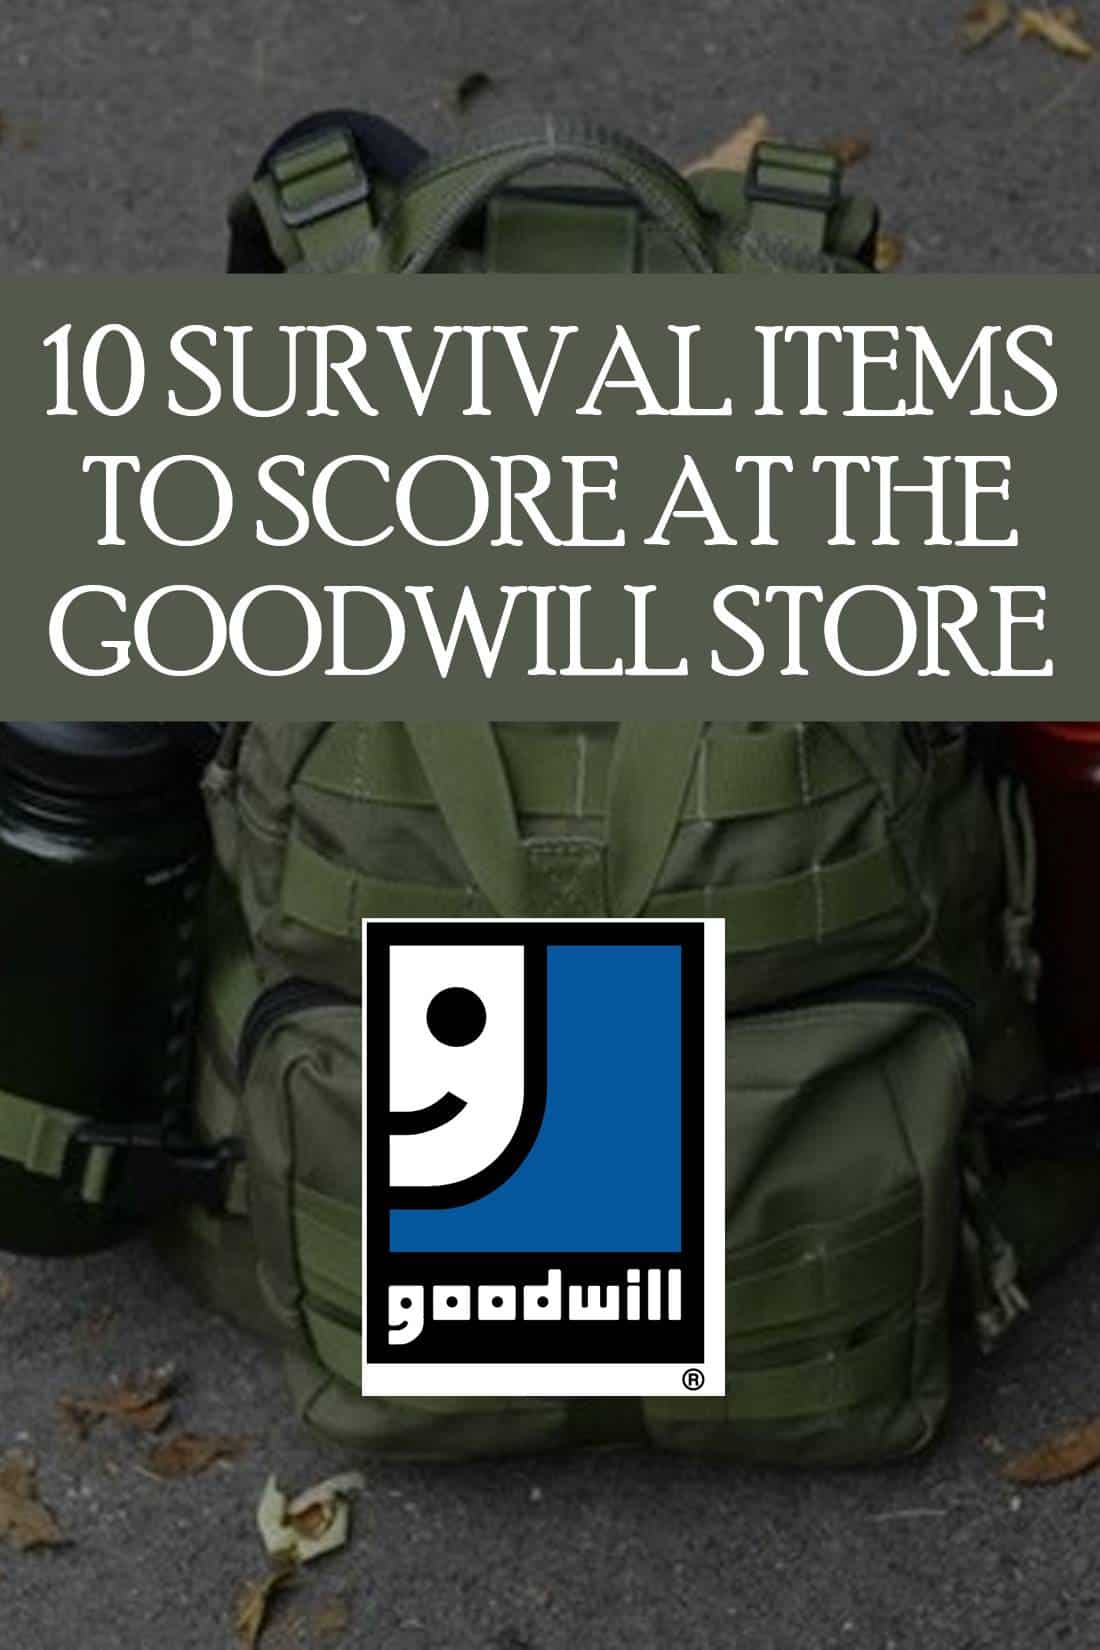 Goodwill store pin image